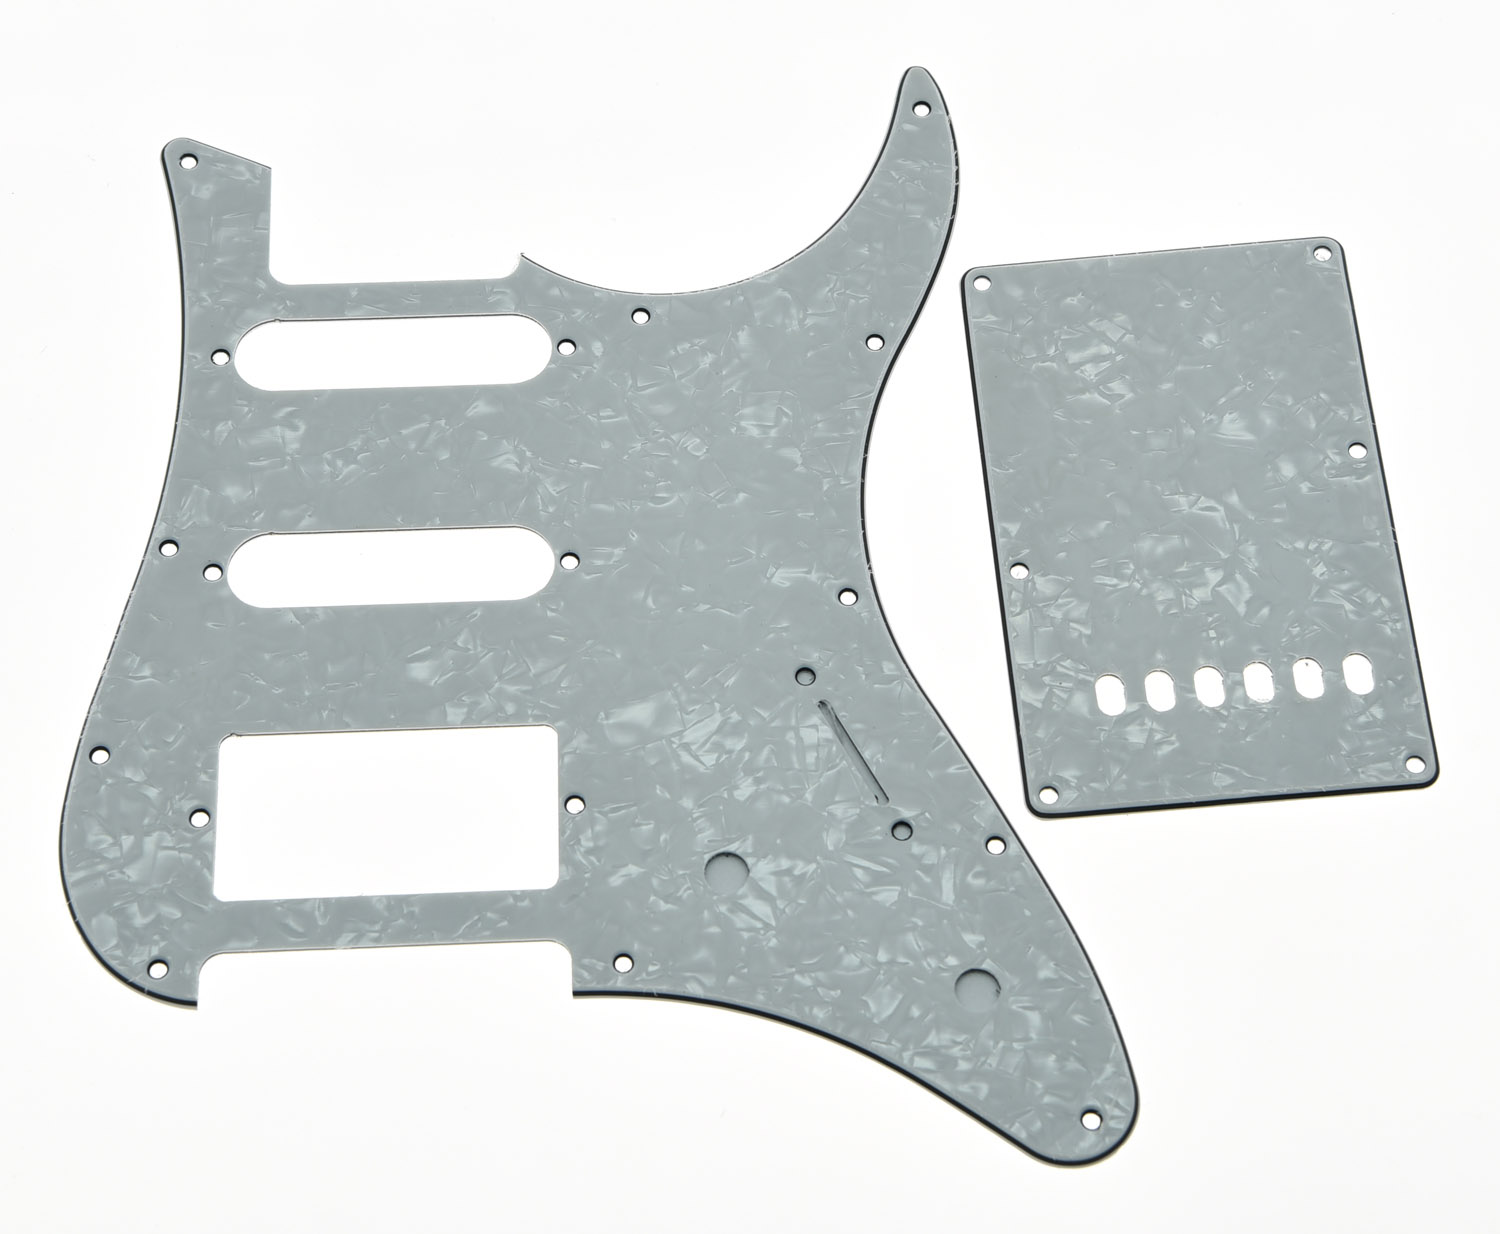 White Pearl Guitar Pickguard w/ Back Plate and Screws fits Yamaha PACIFICA